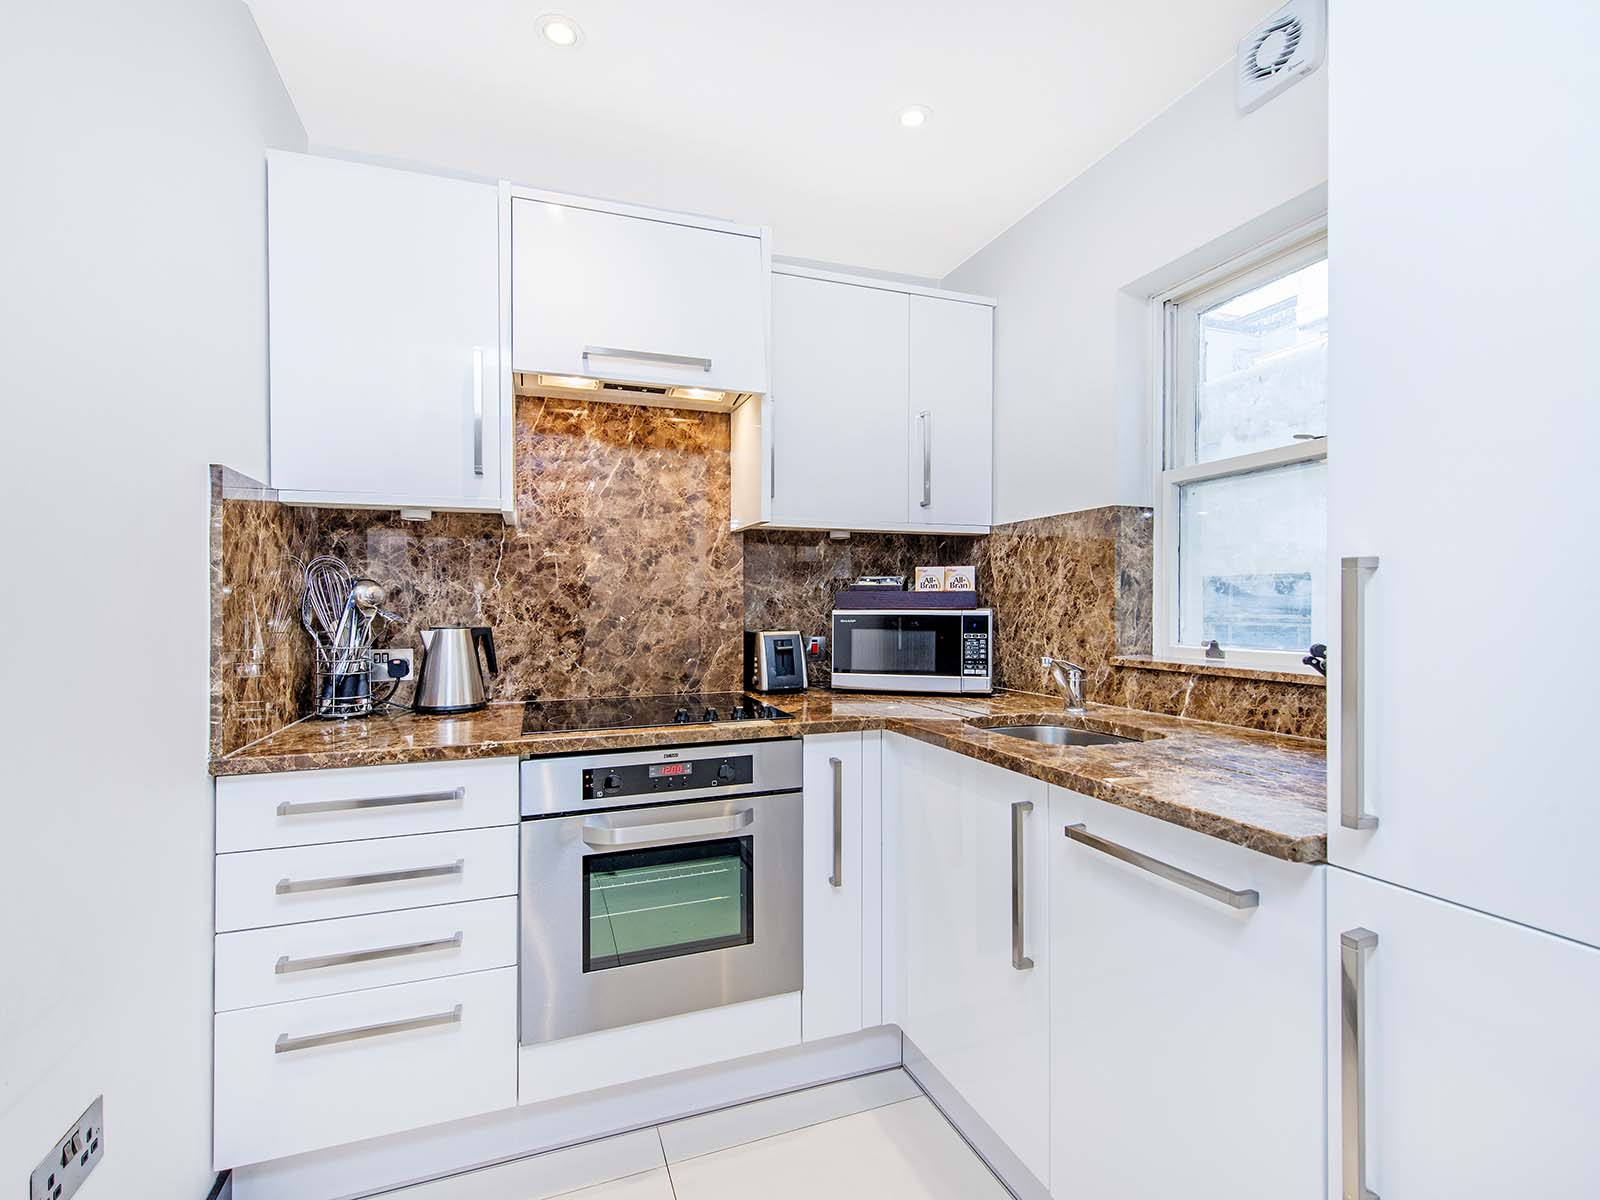 Kitchen at 130 Queens Gate Apartments, South Kensington, London - Citybase Apartments